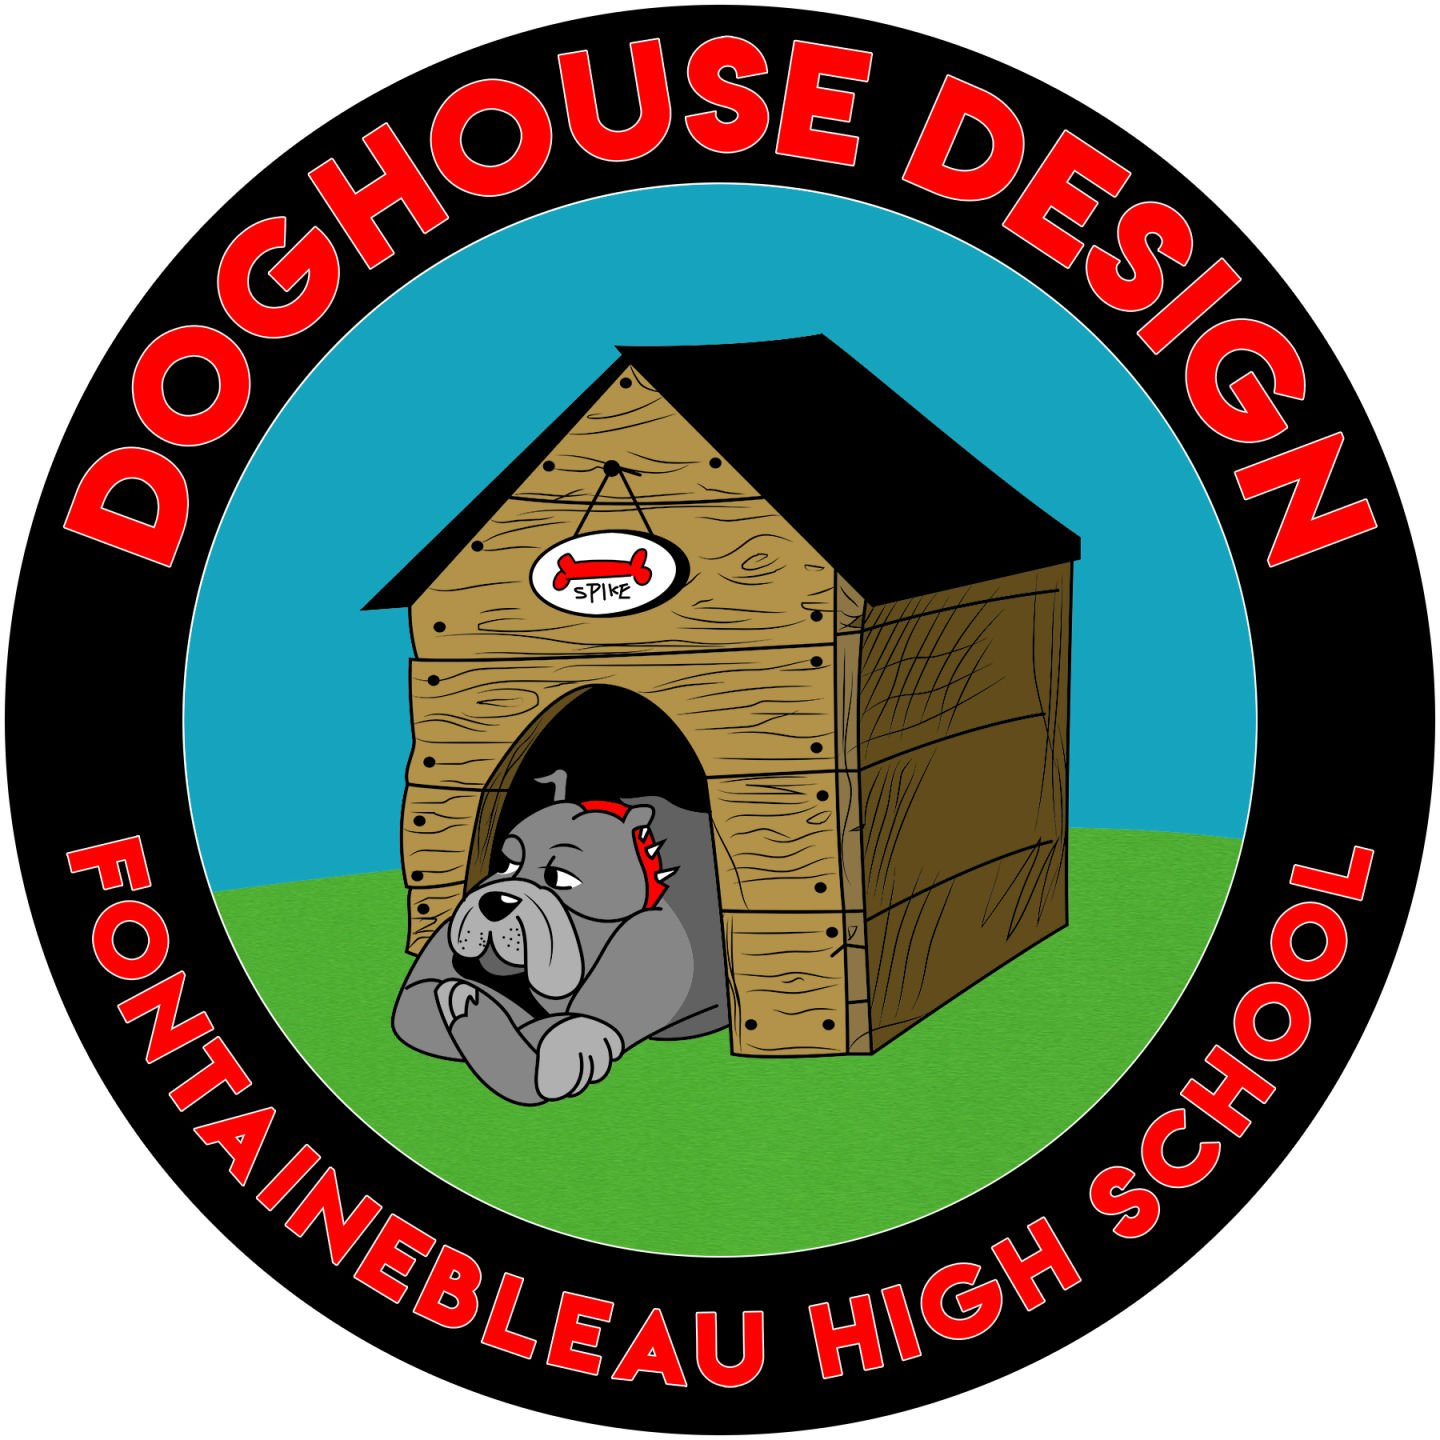 Fontainebleau High's DogHouse Design offering real-world skills to students, quality products to the public